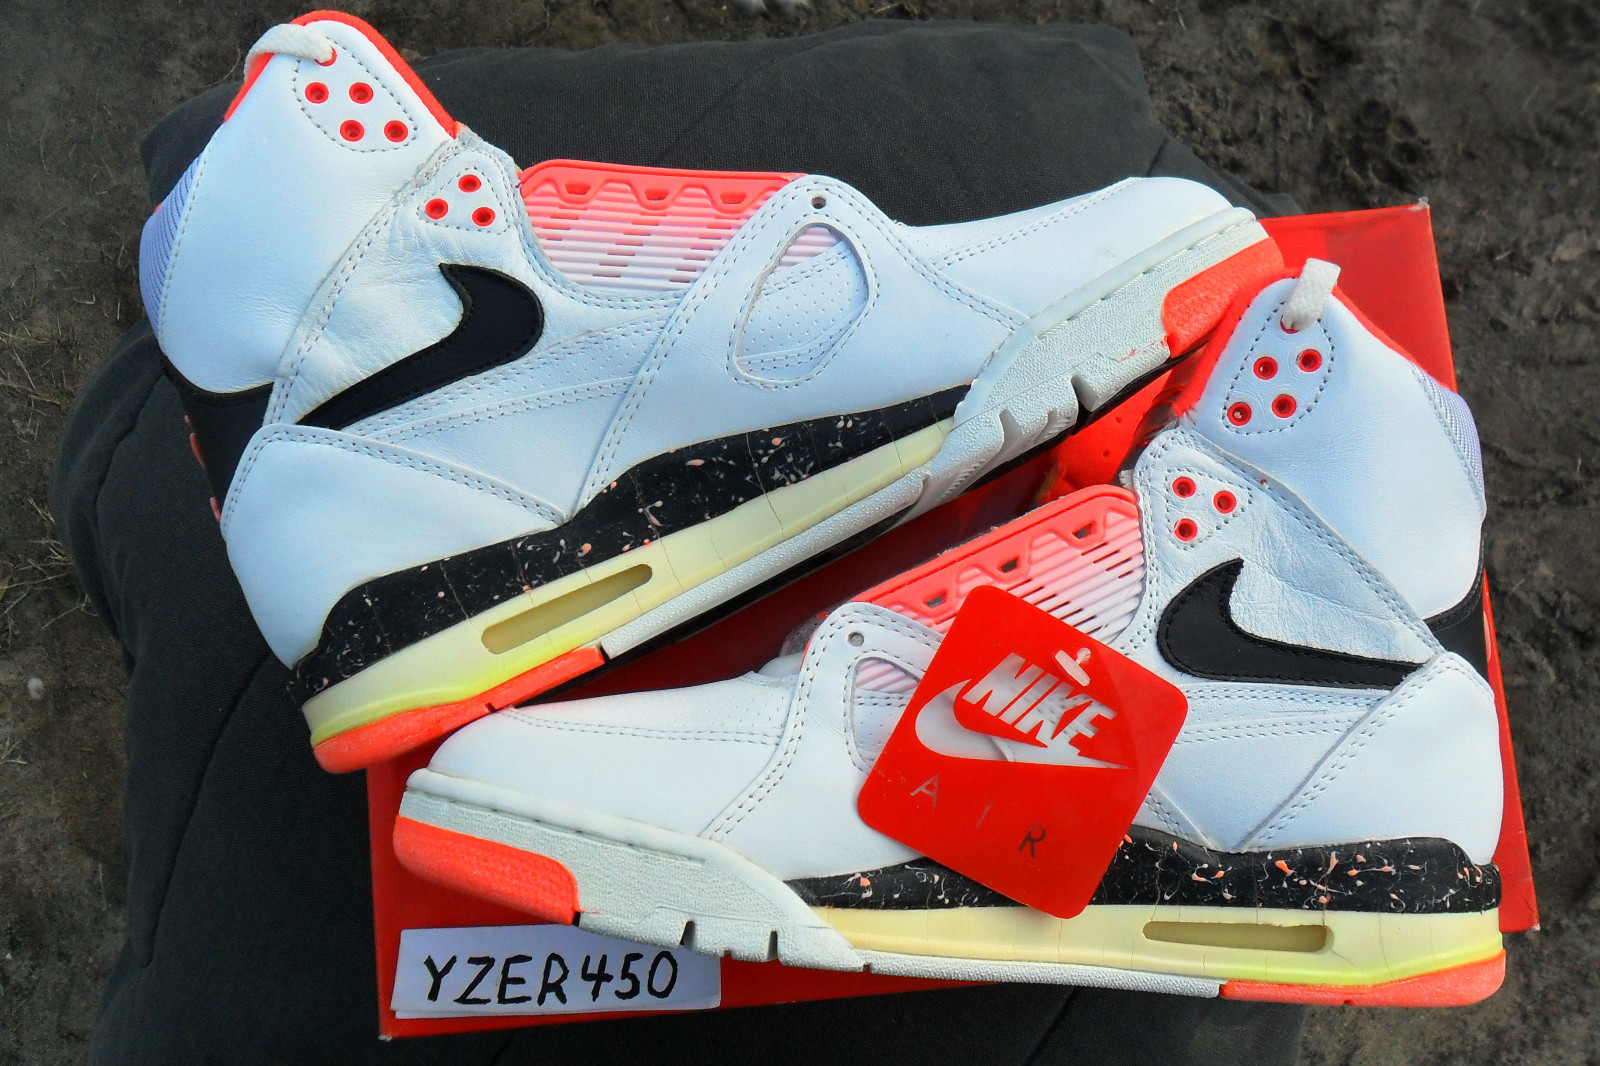 89 Nike Air Flight High Top Musée des impressionnismes Giverny